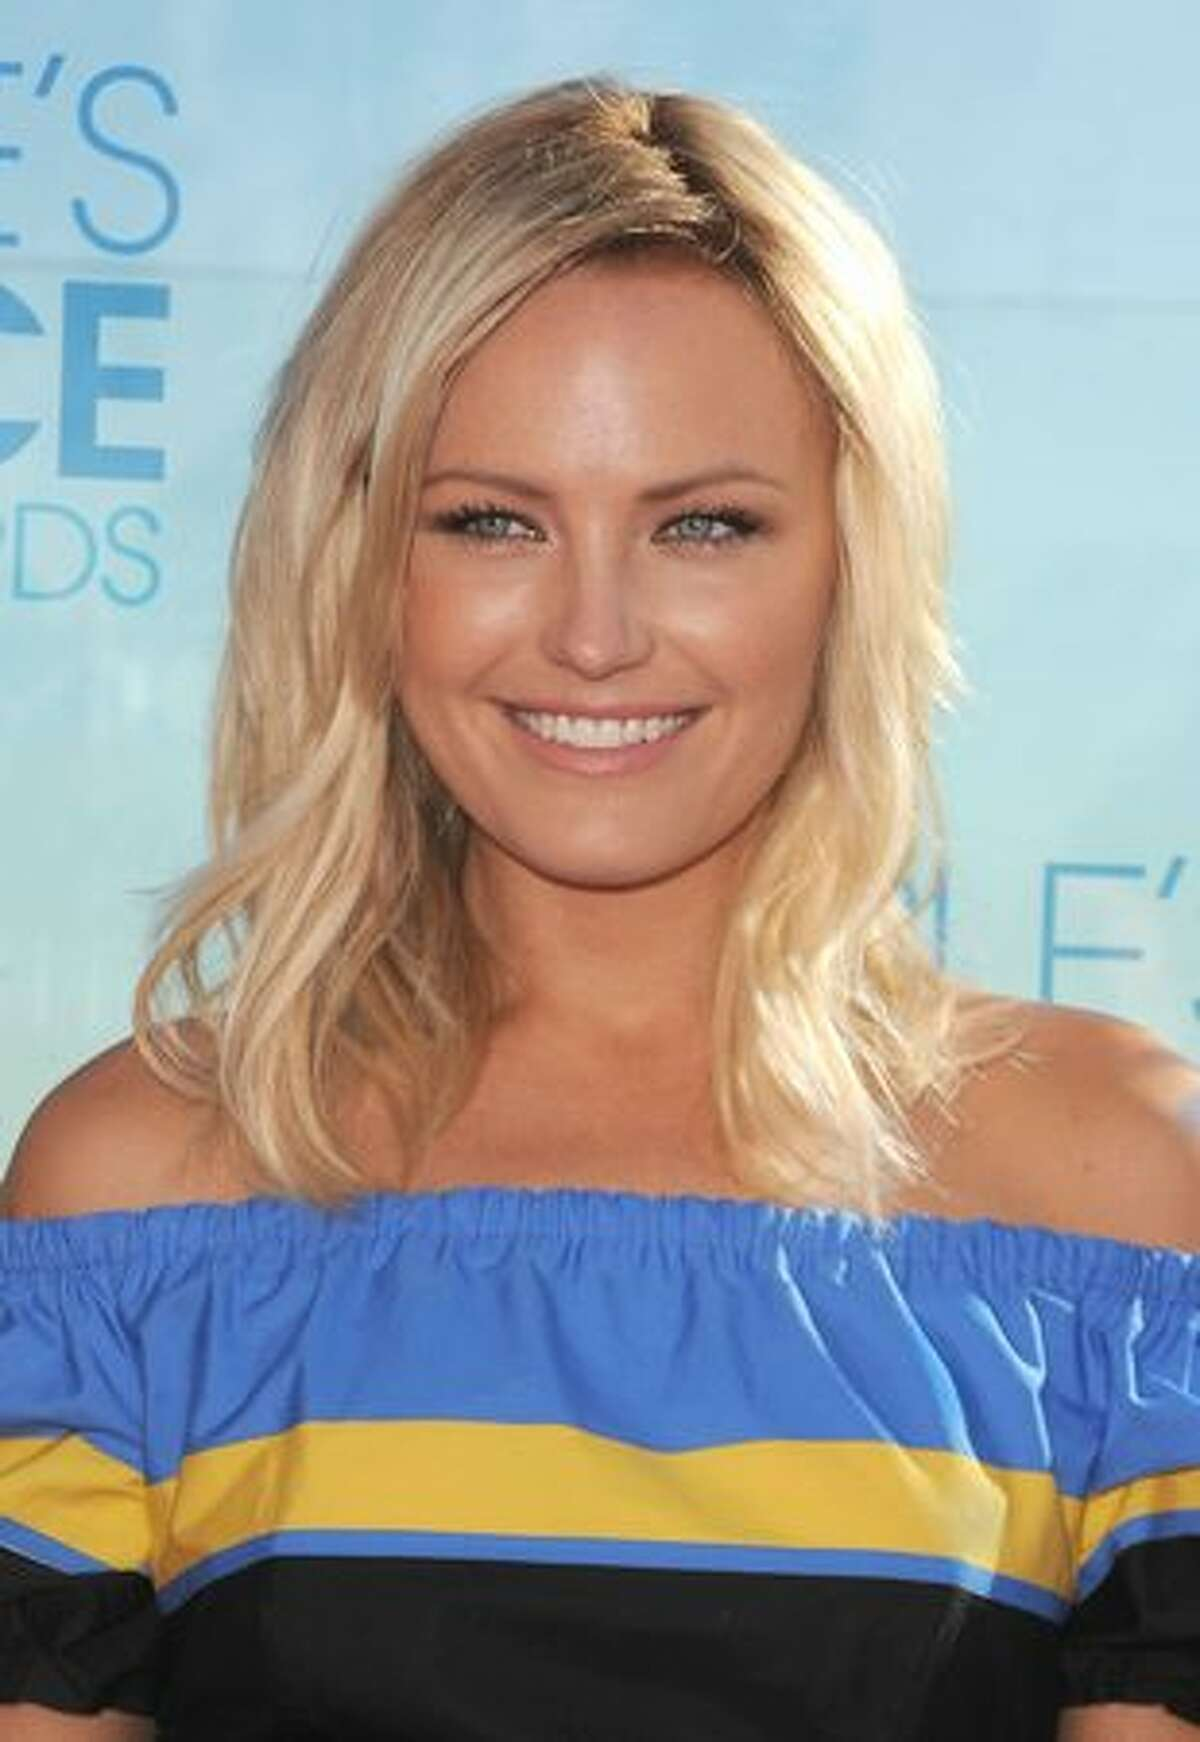 Actress Malin Akerman attends the People's Choice Awards 2011 Press Conference in West Hollywood, California.